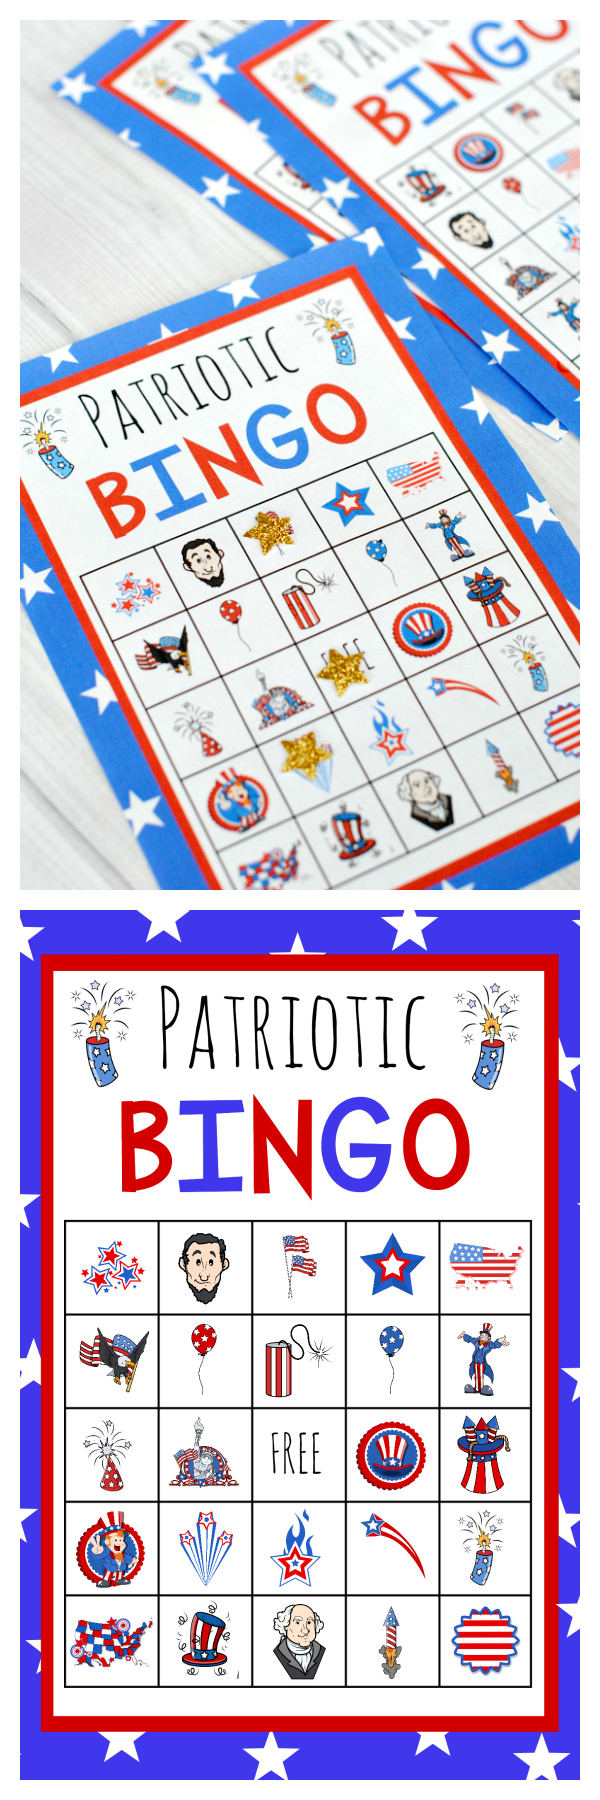 Free Printable America Bingo-Perfect for the 4th of July, this 4th of July bingo game is fun for the kids to play while they wait for the fireworks! #4thofjuly #bingo #kids #kidsactivities